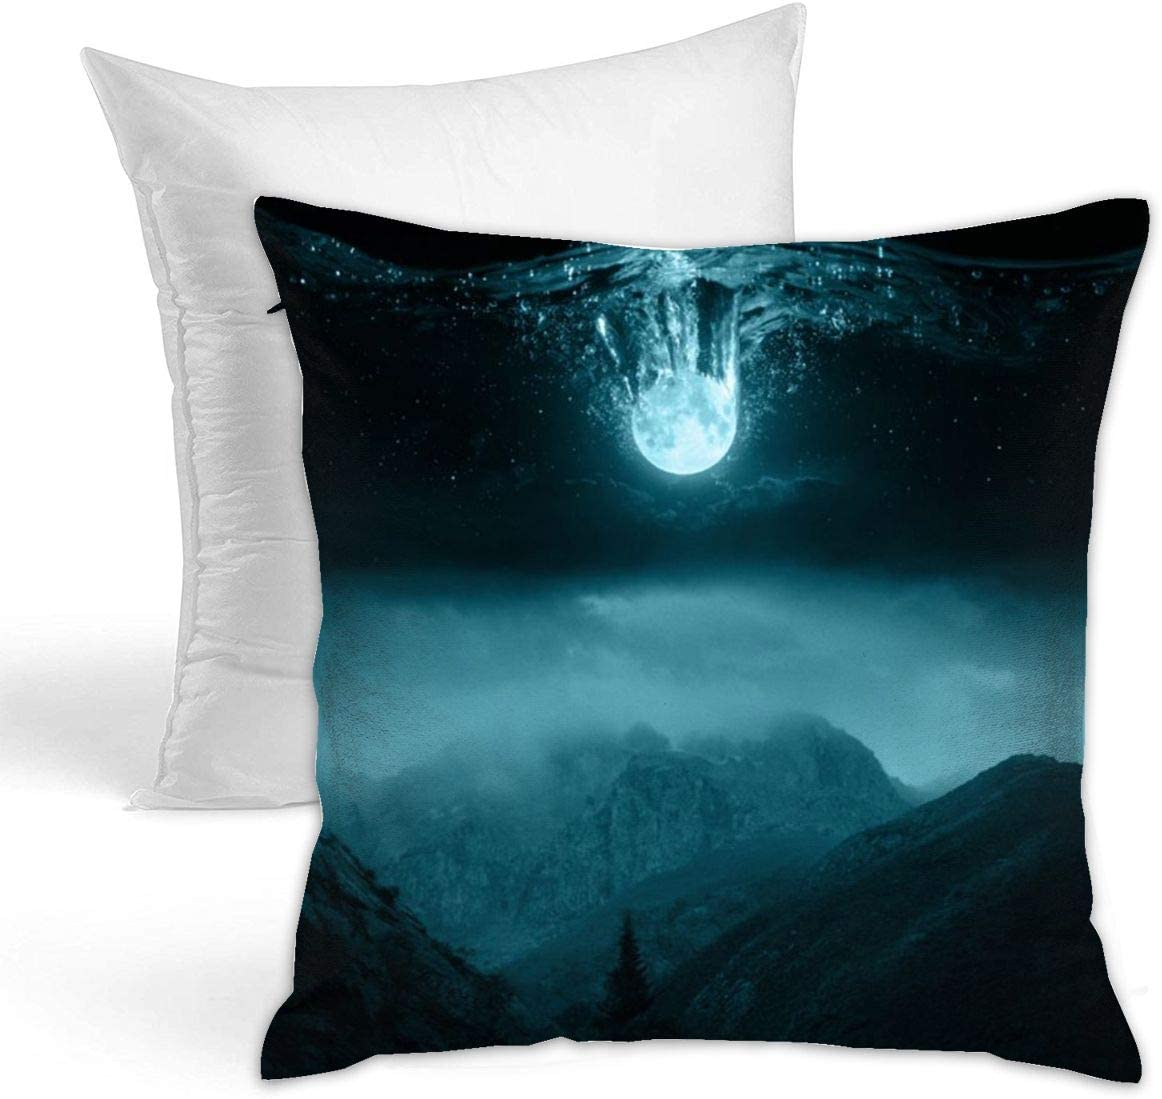 Amazon Com Ultra Soft Round Moon Water Drop Big Mountain Print Square Throw Pillow Insert Sofa Bedroom Decorative Cushion Have Stuffer 17 X17 Home Kitchen